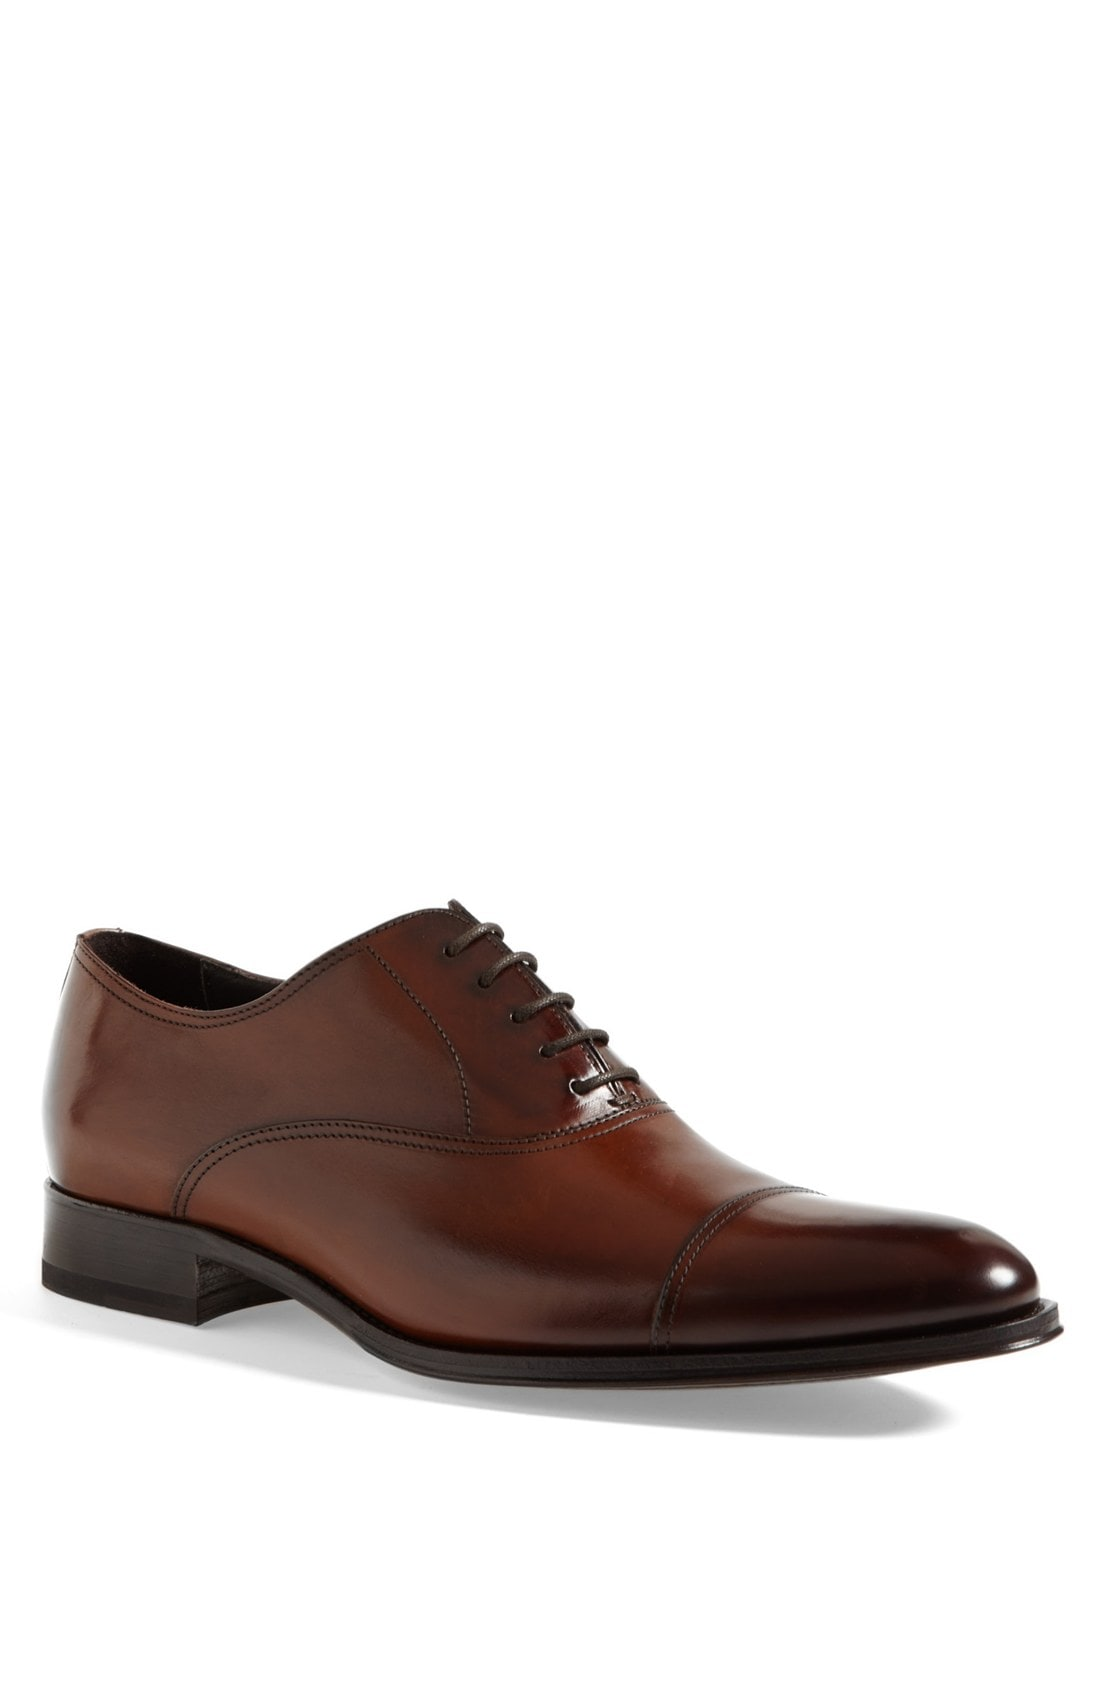 Men's Oxfords & Derby Shoes | Nordstrom